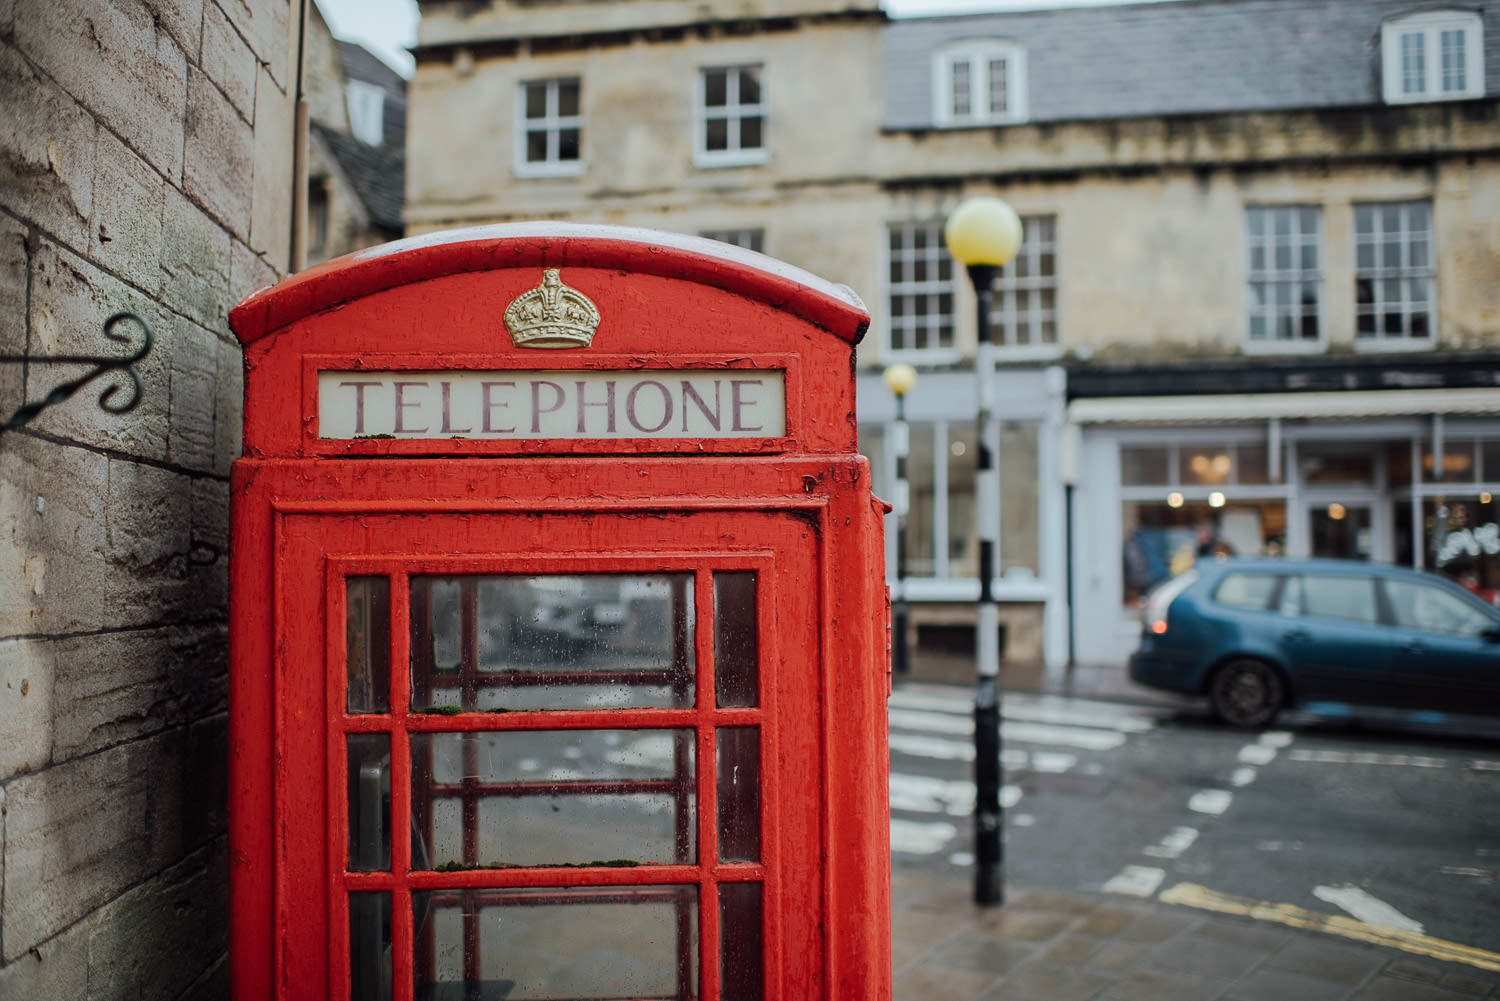 red phone box in bradford on avon by bath wedding photographer the shannons photography